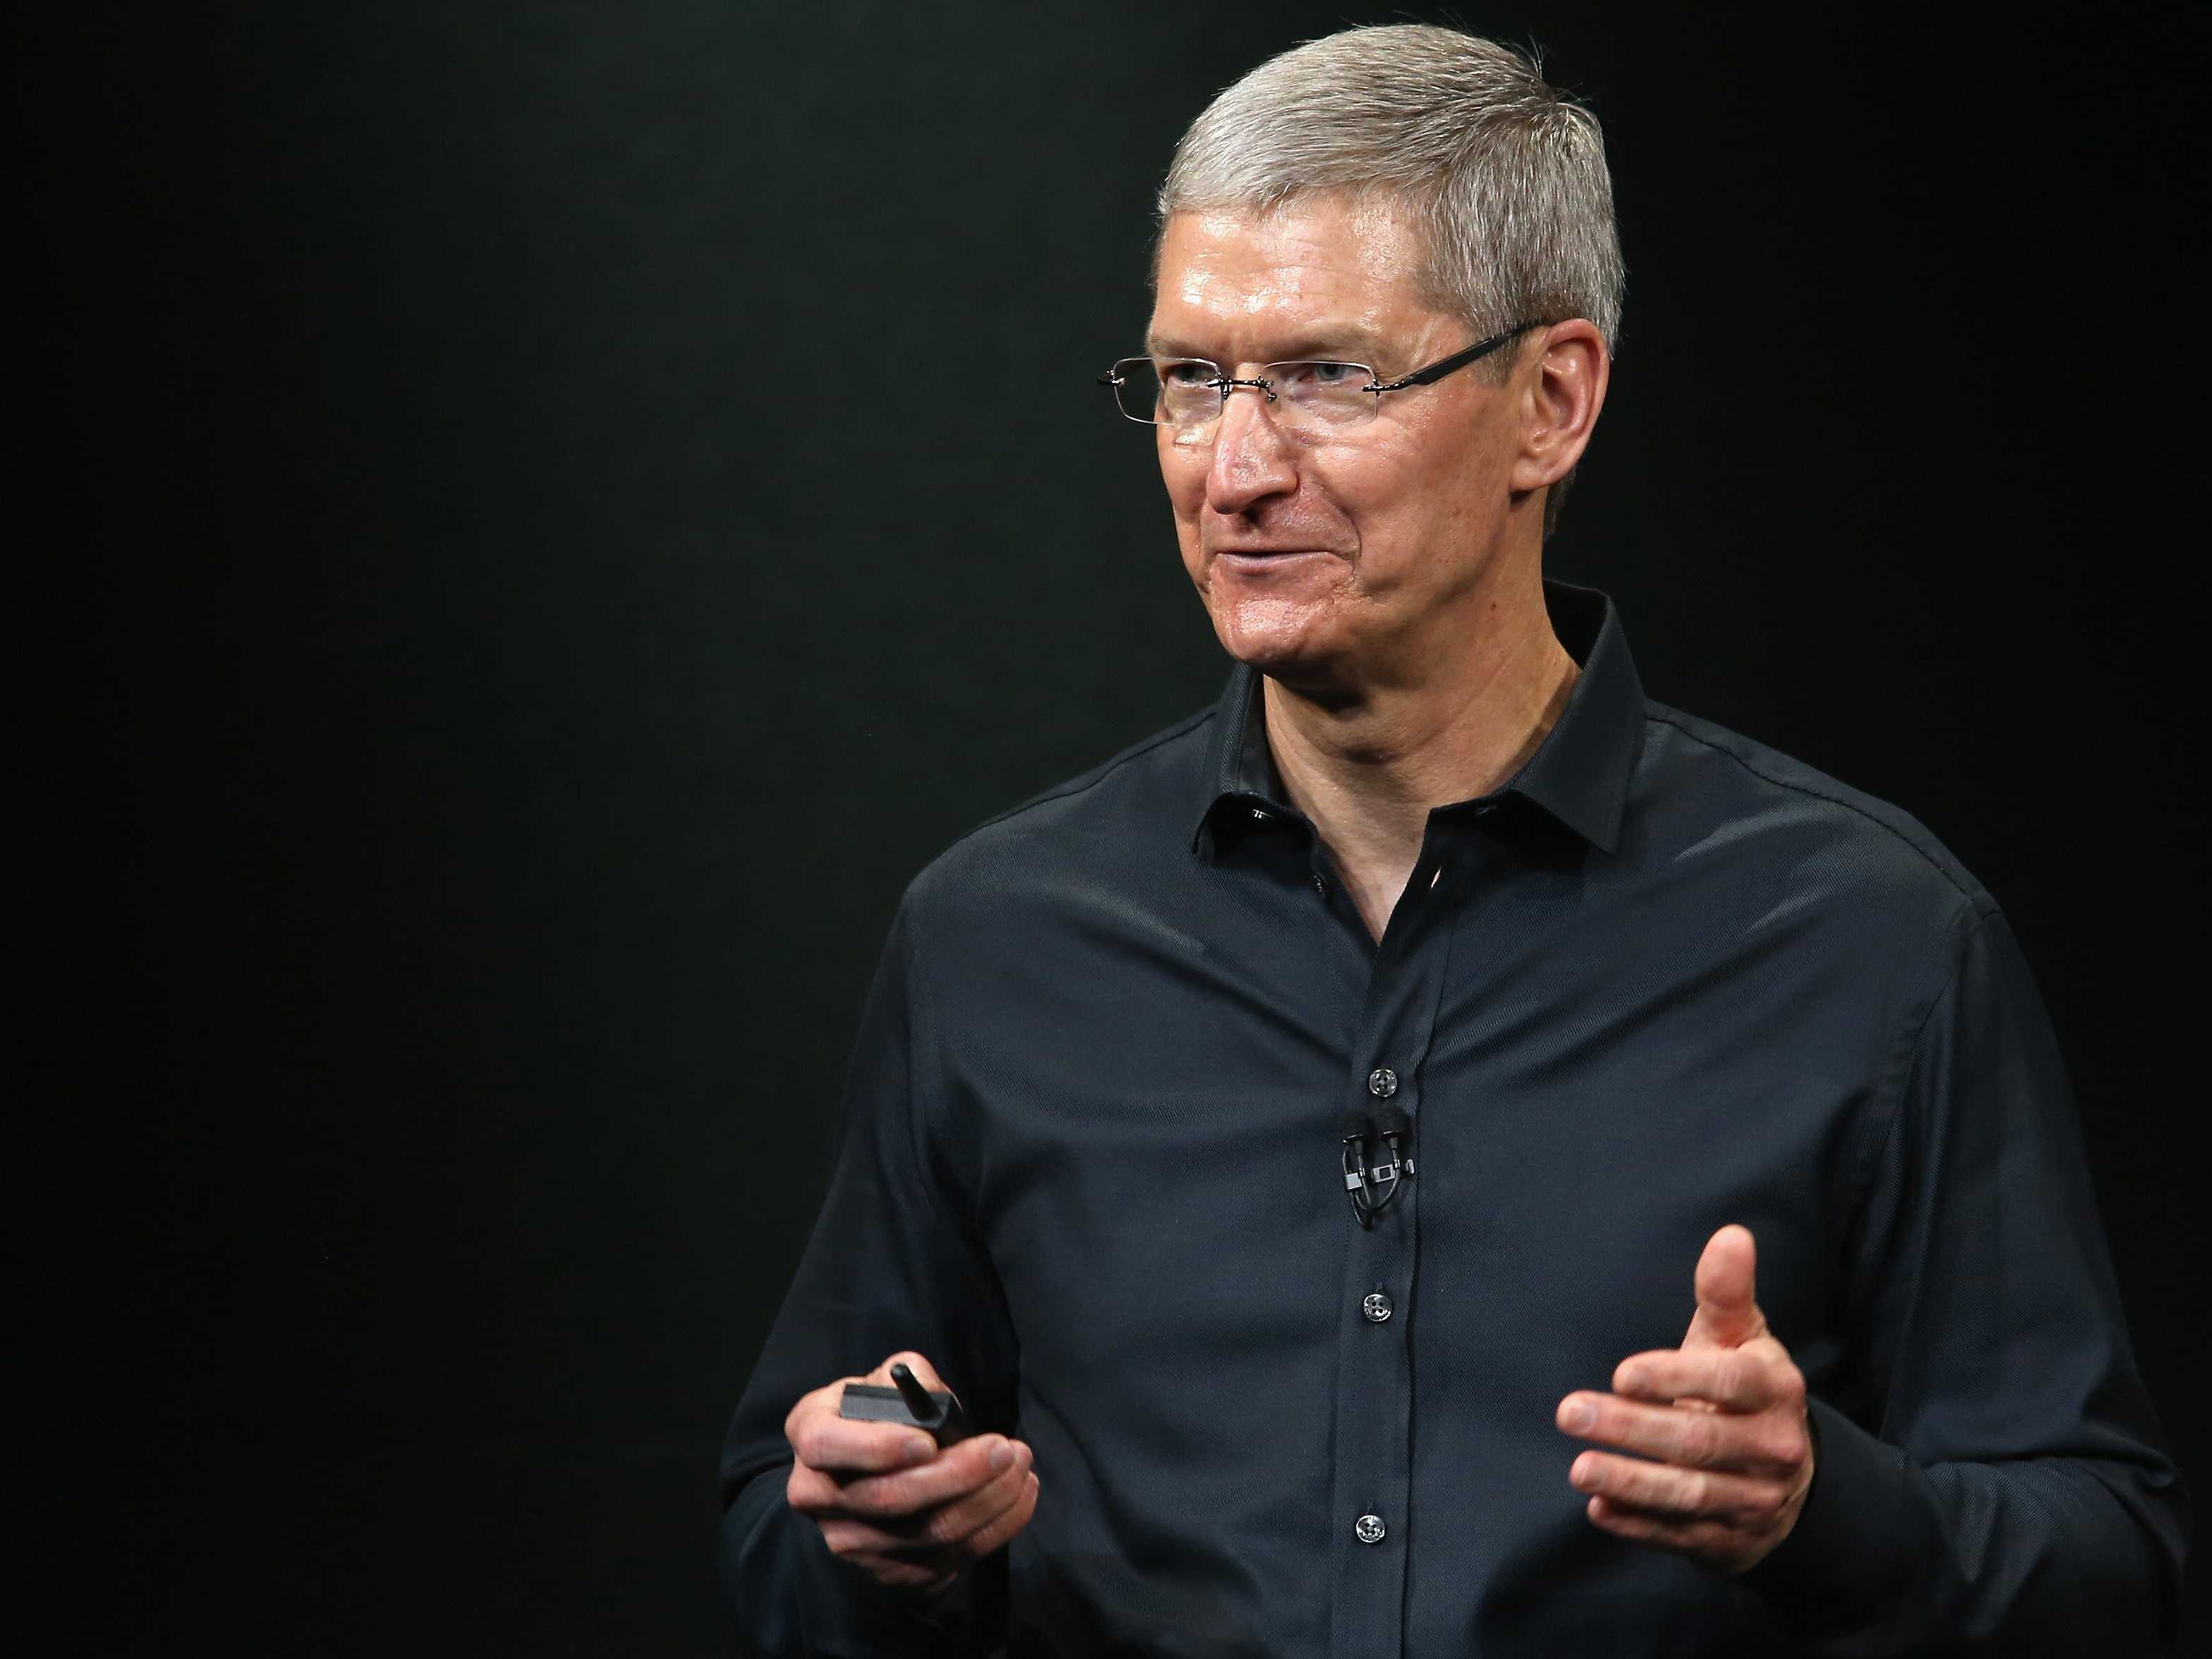 i-am-also-an-apple-shareholder-and-i-have-also-written-a-letter-to-tim-cook